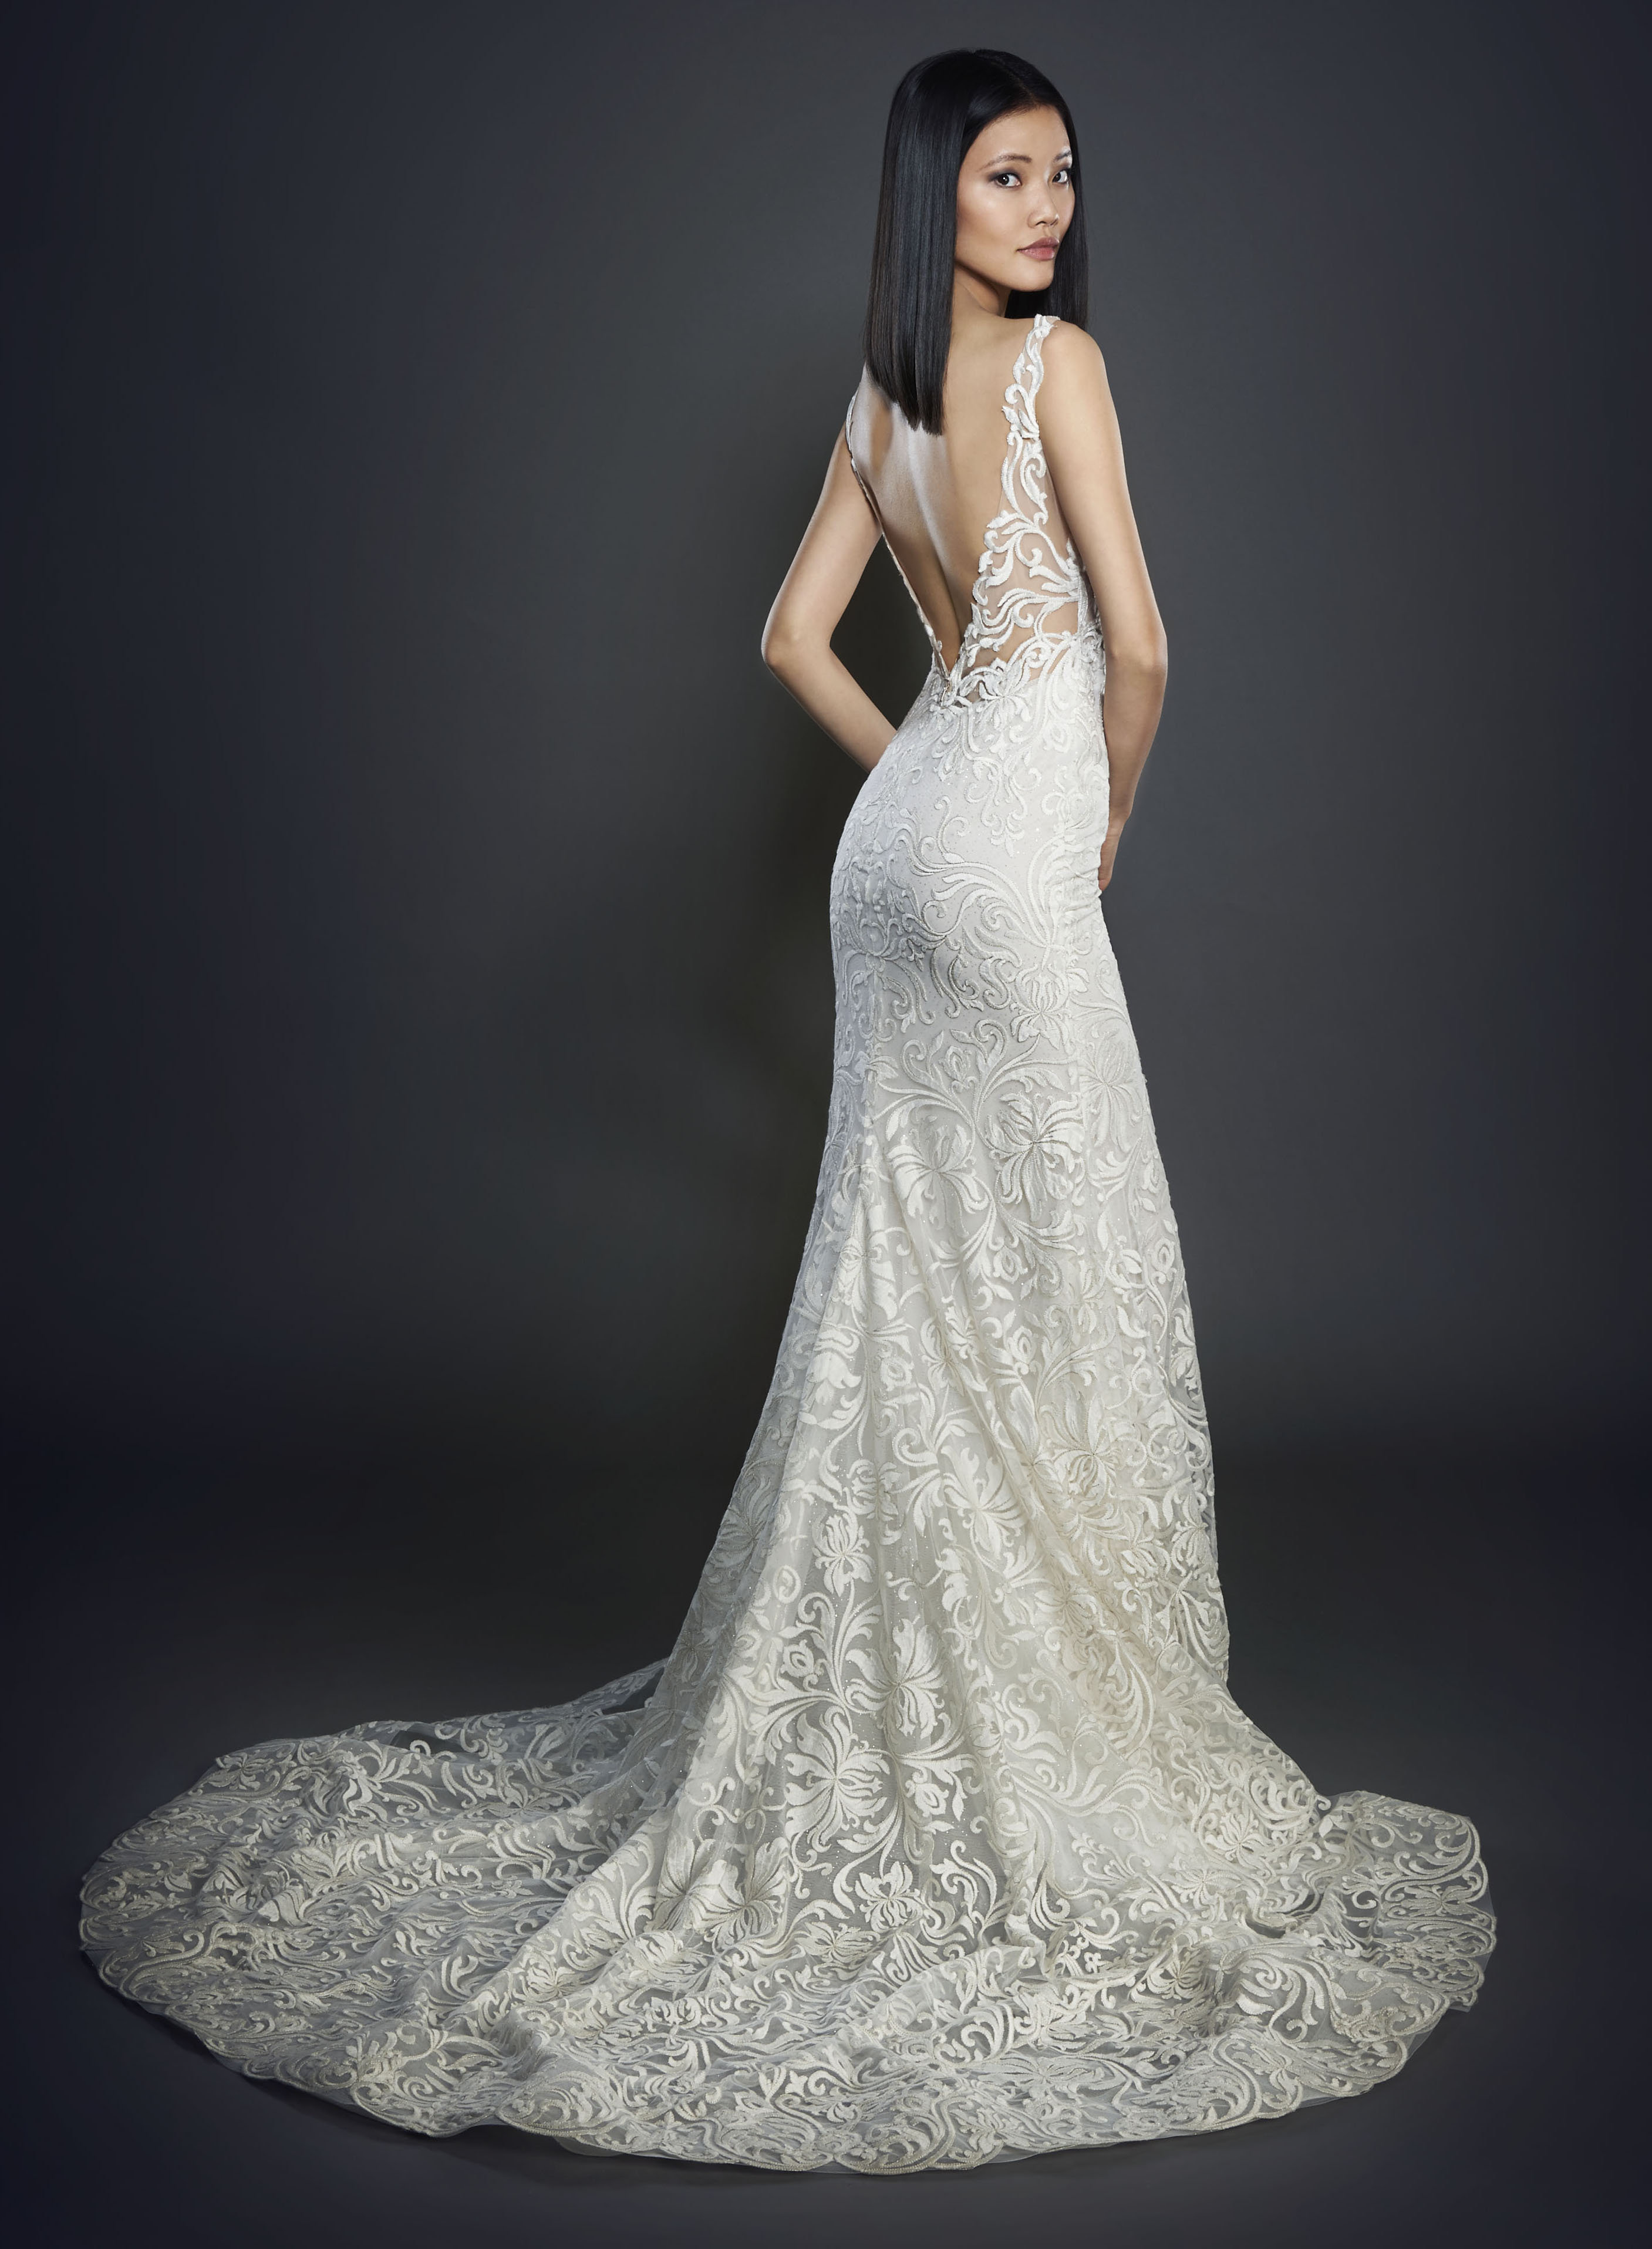 Bridal Gown Patterns New Ideas